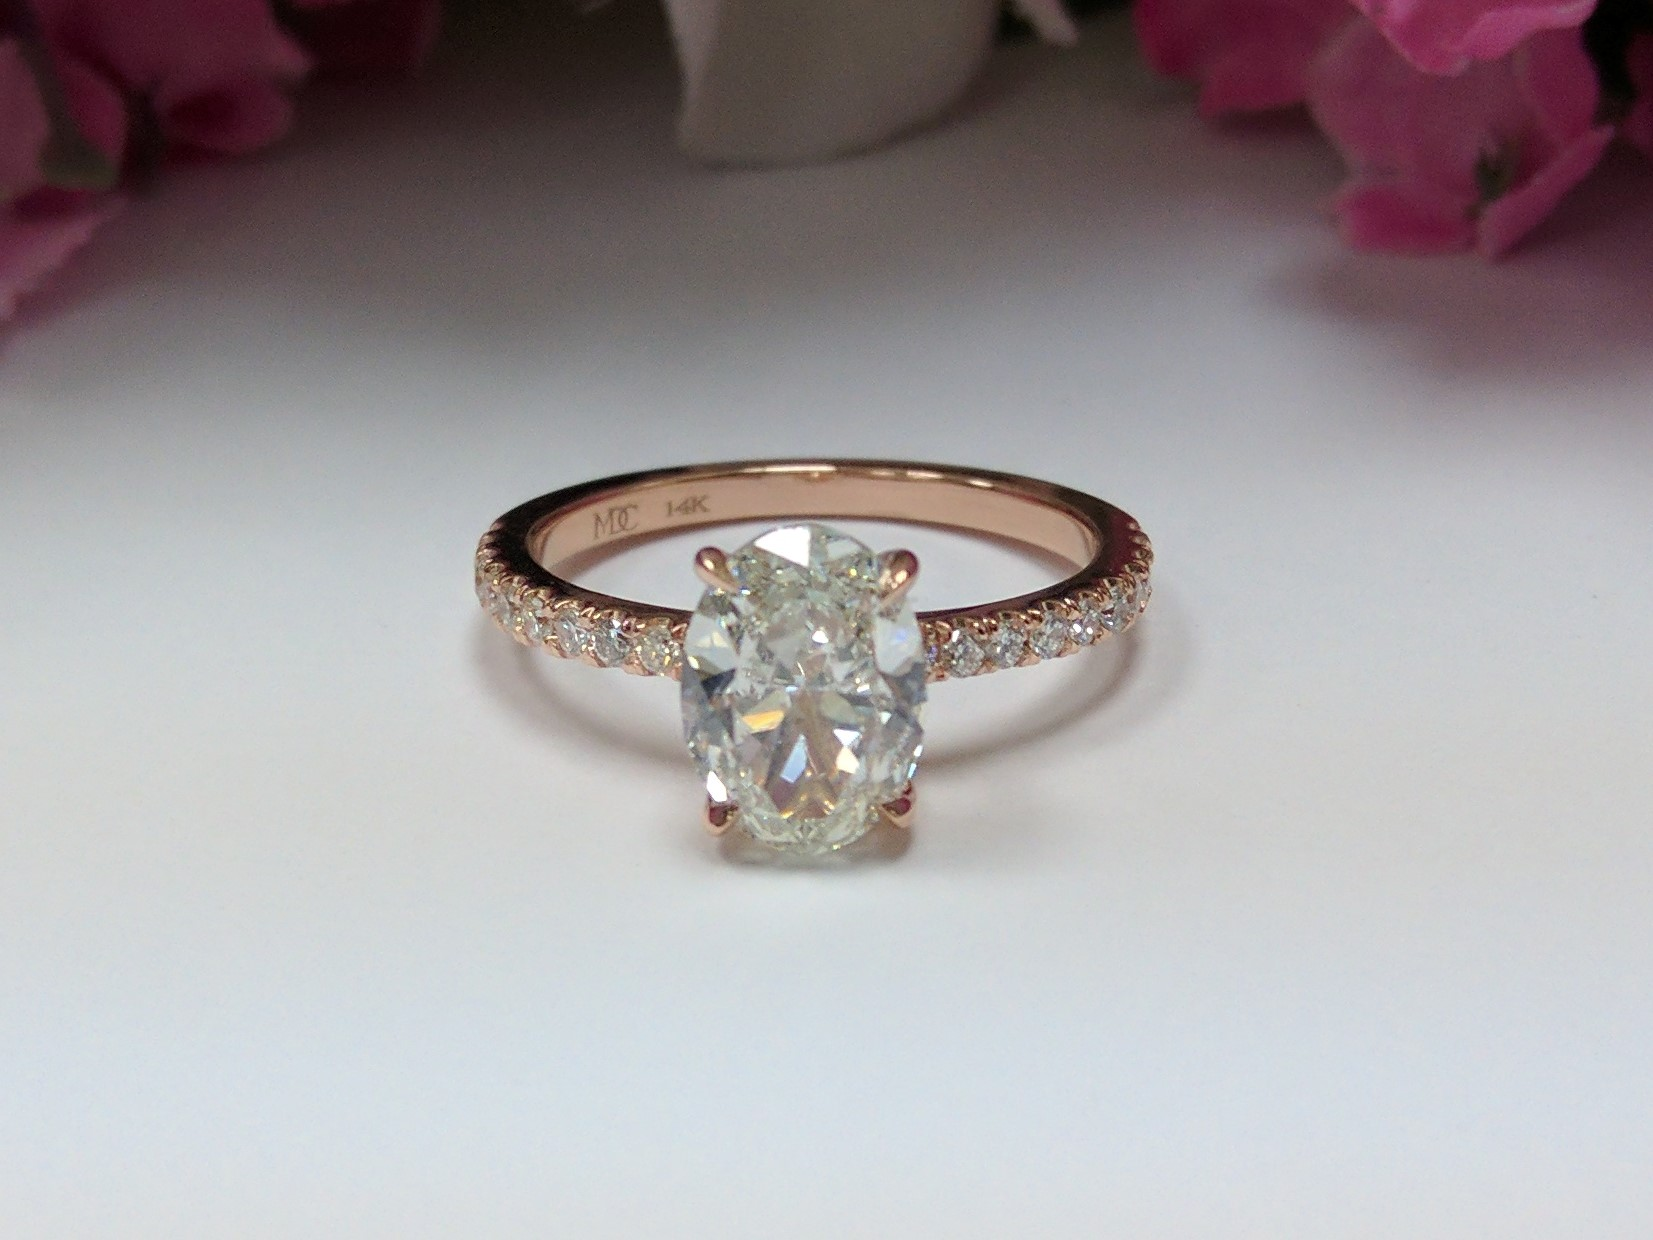 Delicate Low Profile Oval Diamond Engagement Ring in Rose Gold